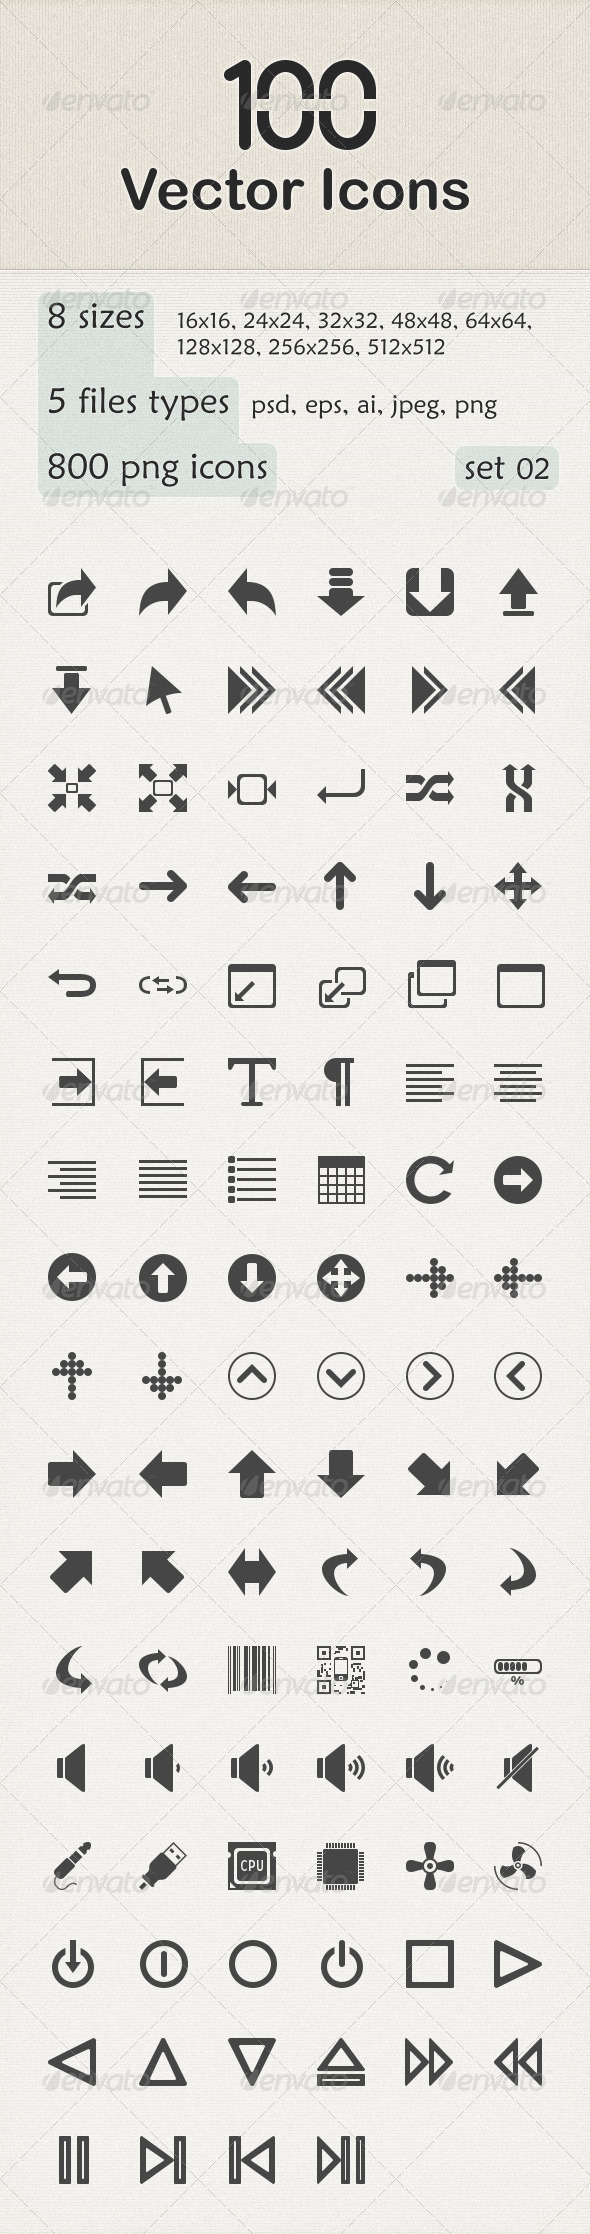 GraphicRiver 100 Vector Icons 6149358